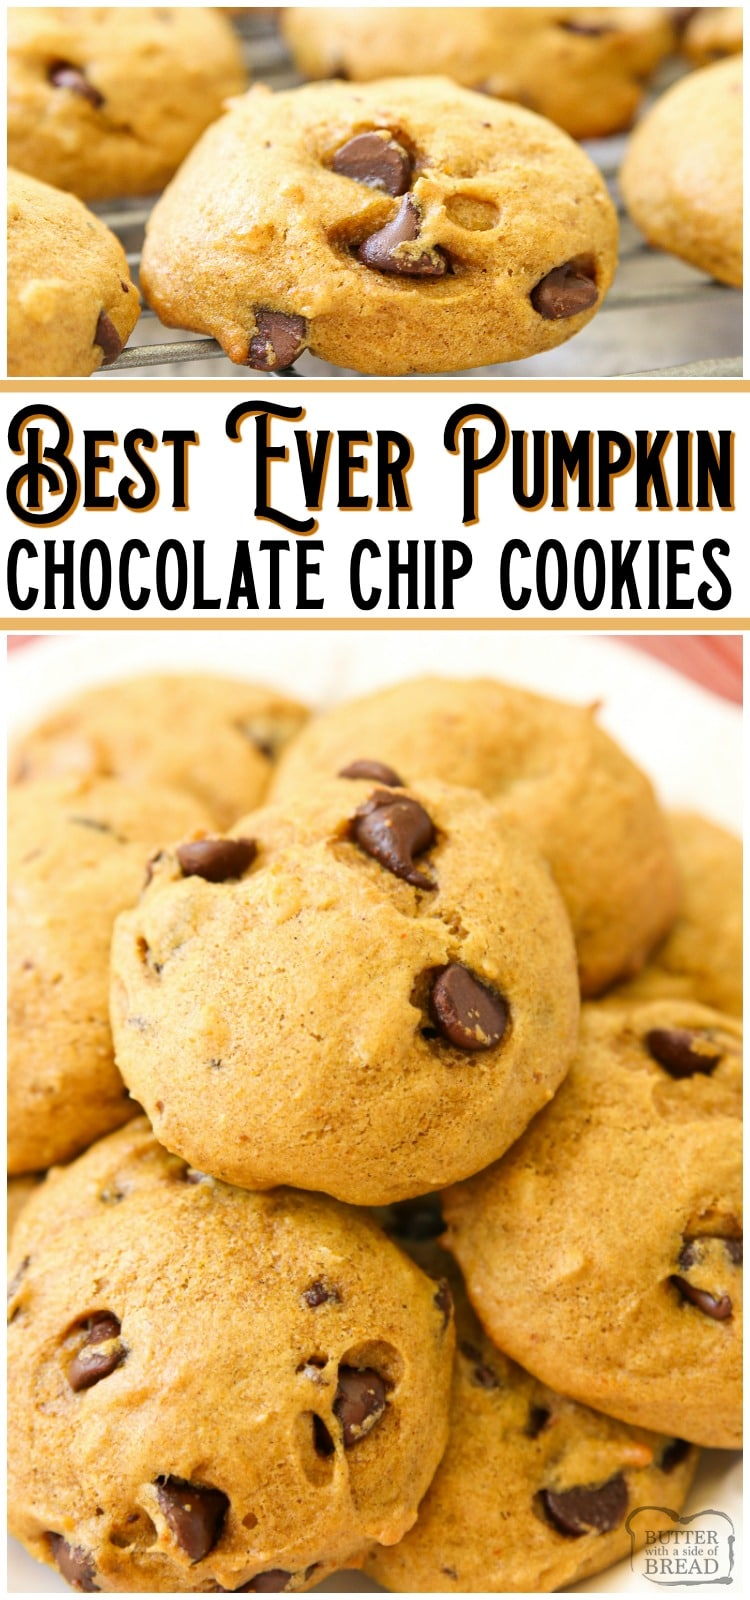 Pumpkin Chocolate Chip Cookies are soft & pillowy cookies with great pumpkin flavor! Made with pumpkin, chocolate chips and a lovely blend of Fall spices, these pumpkin cookies are a Fall favorite! #pumpkin #chocolatechip #cookies #baking #Fall #dessert #recipe from BUTTER WITH A SIDE OF BREAD